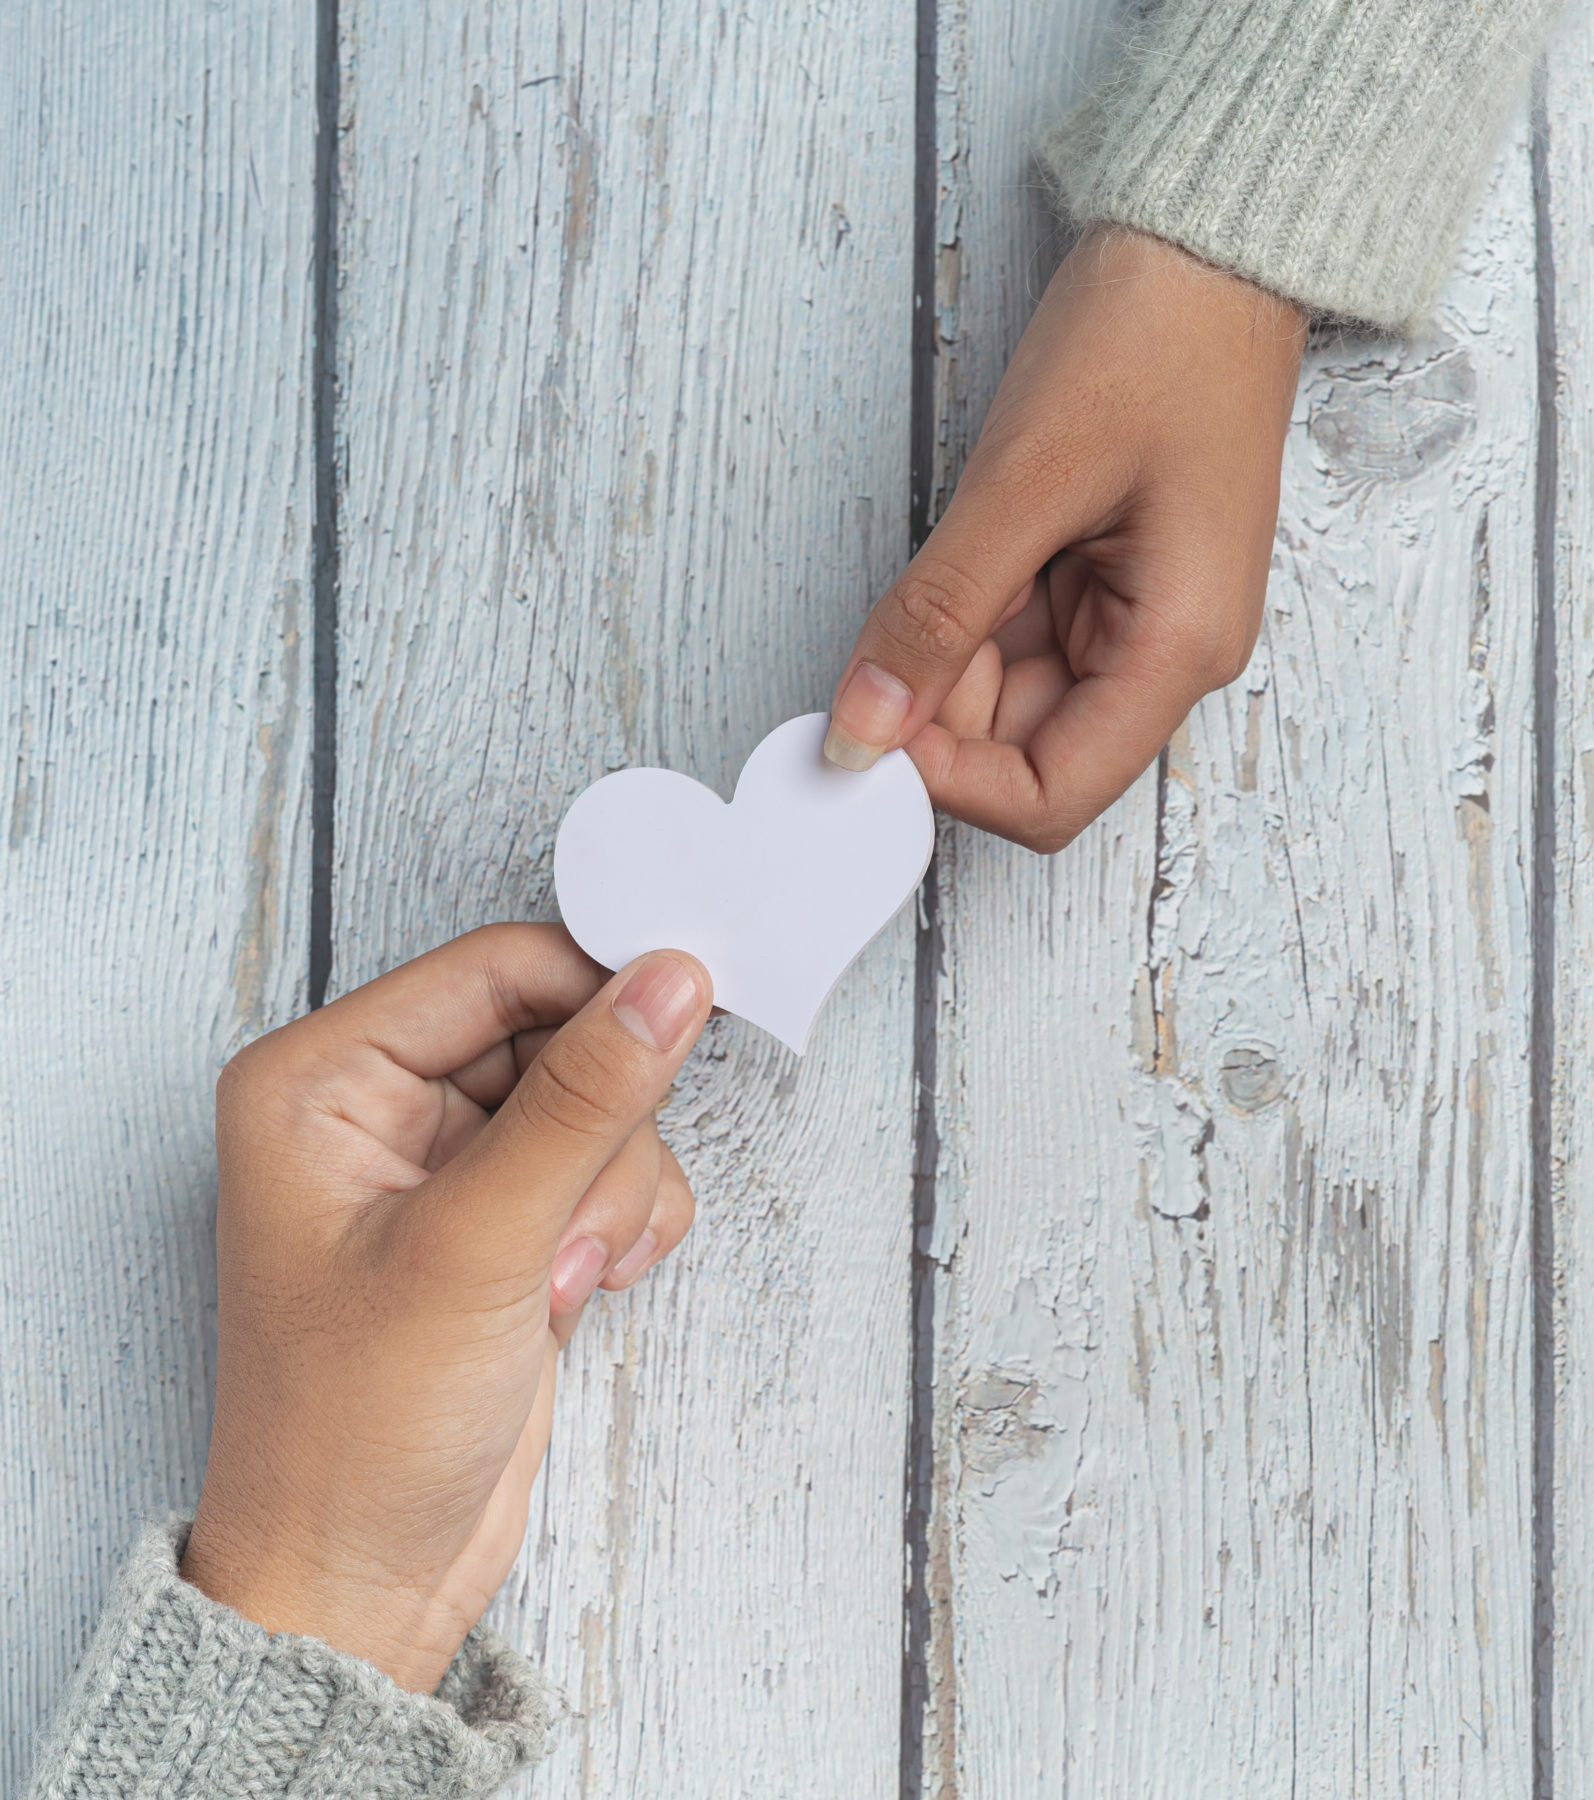 Two people holding a paper heart between their hands over a table